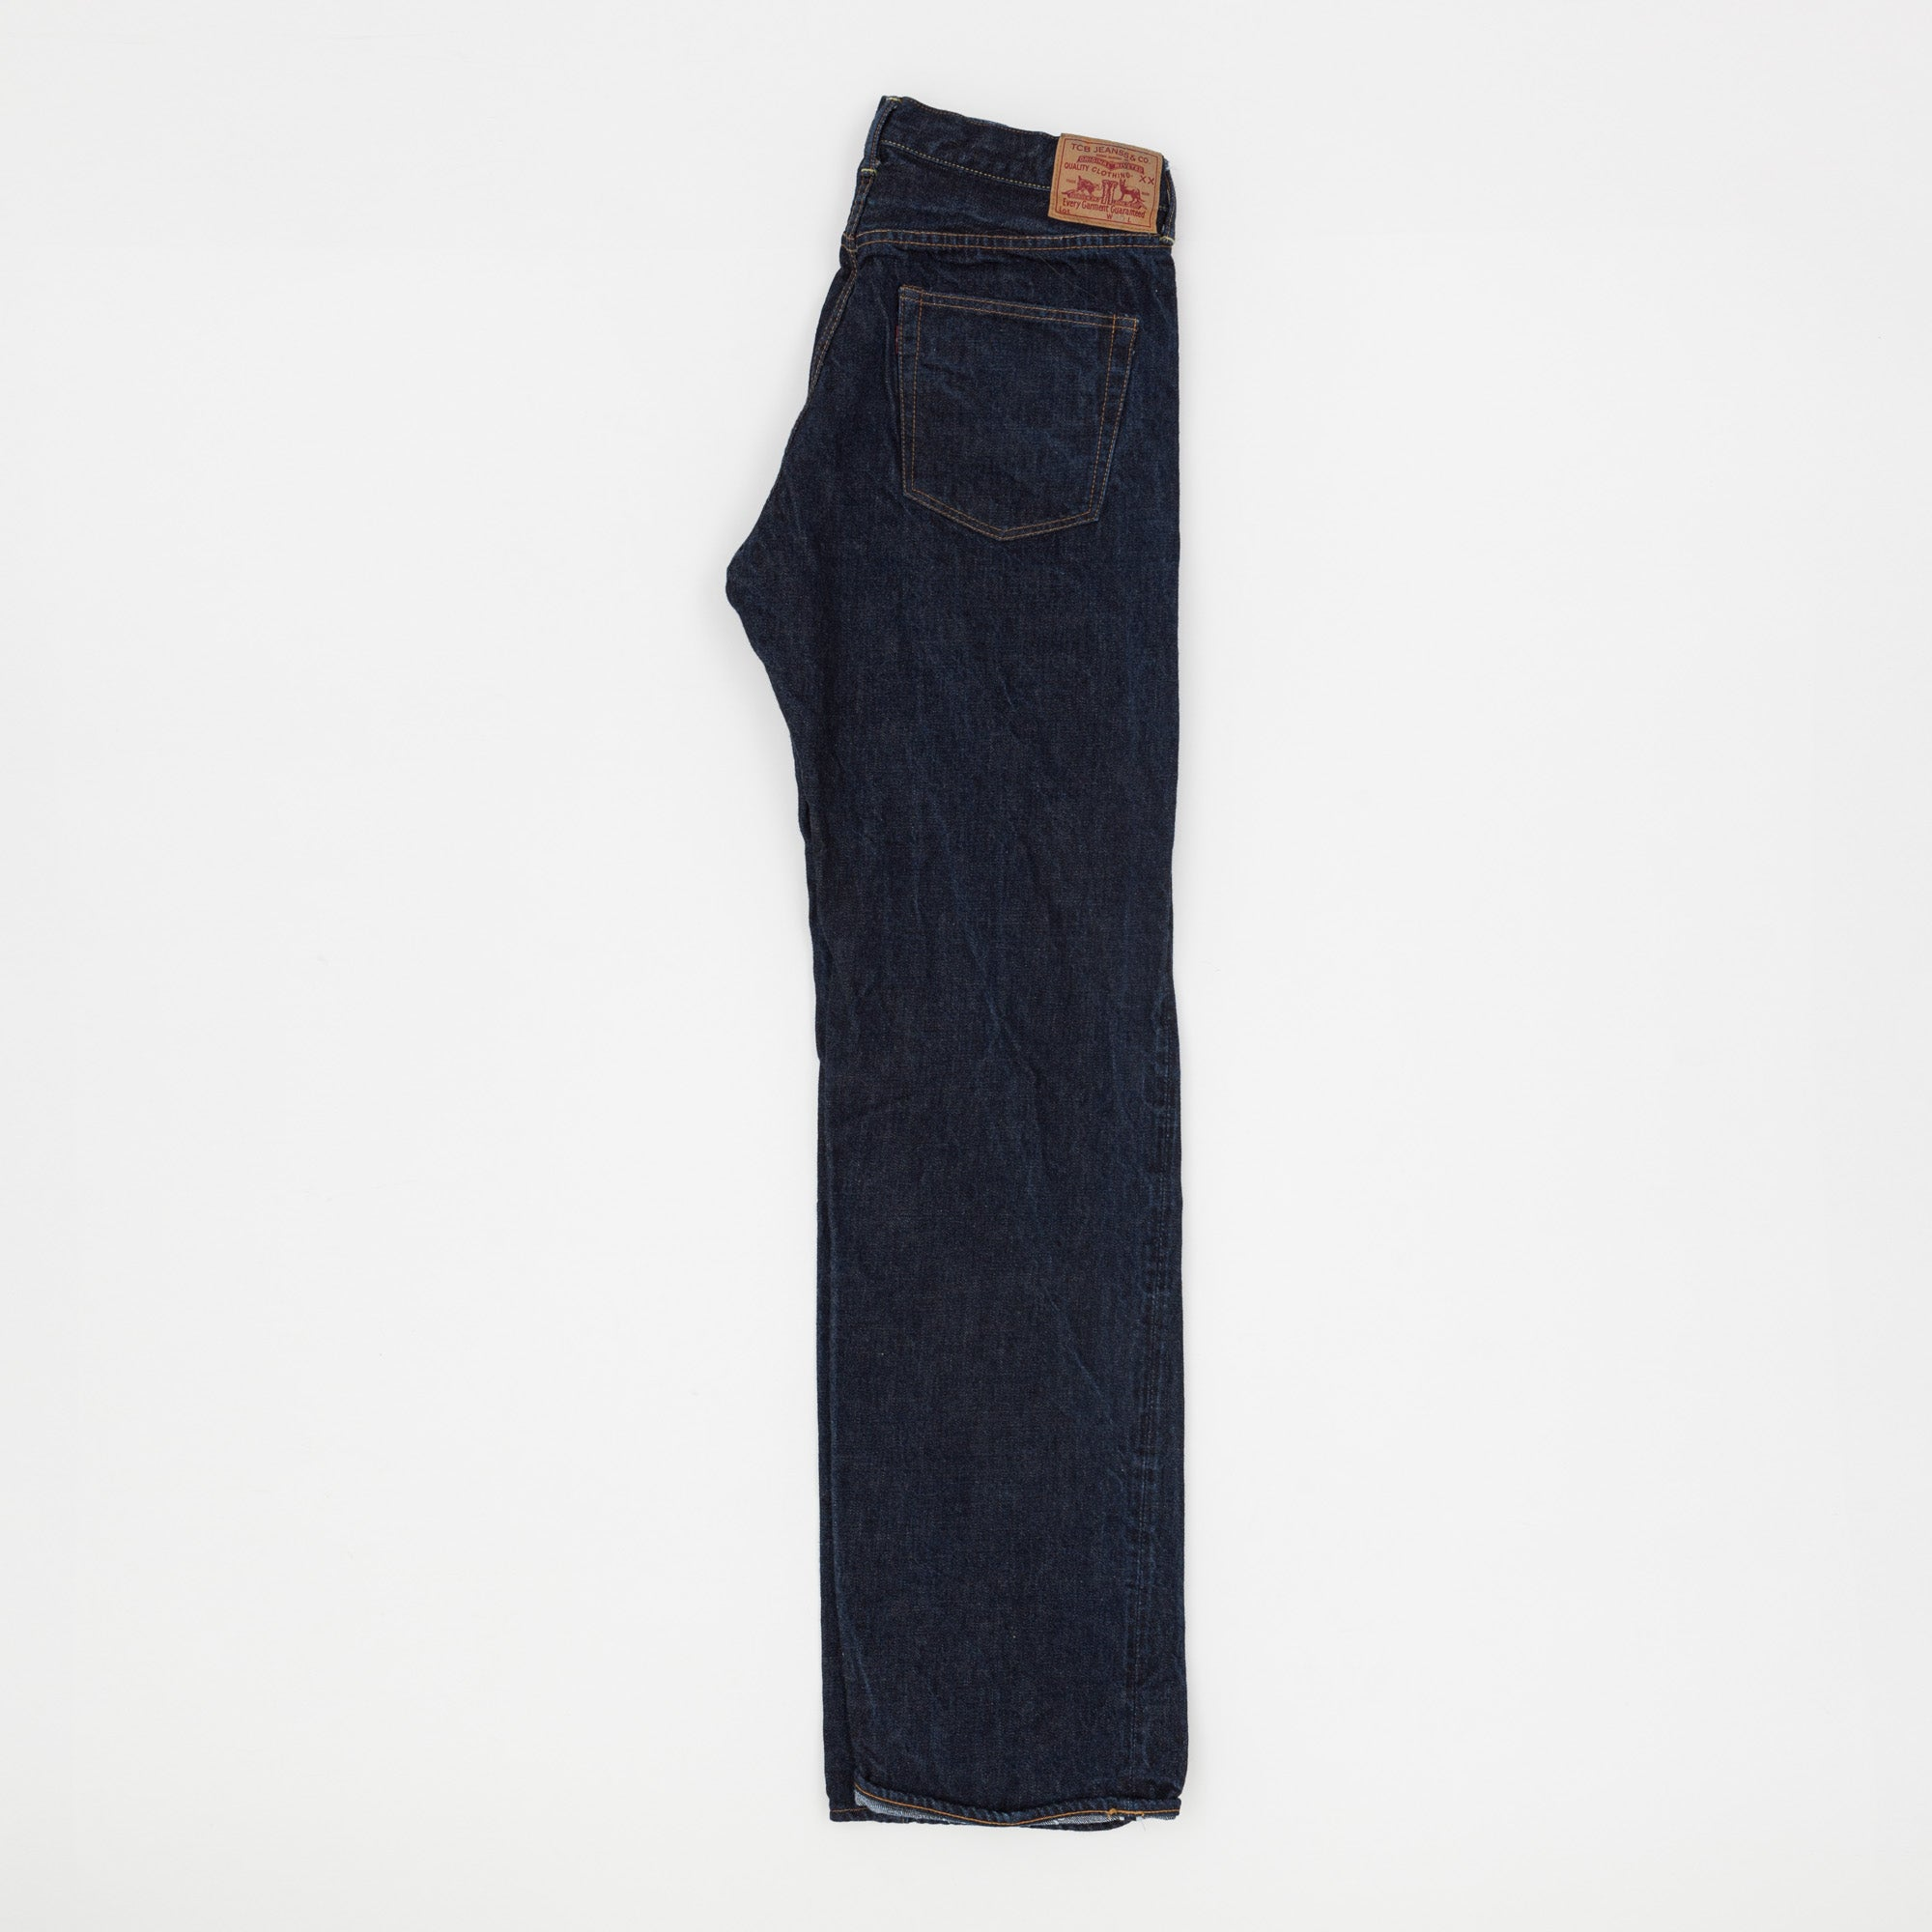 Type 505 Denim